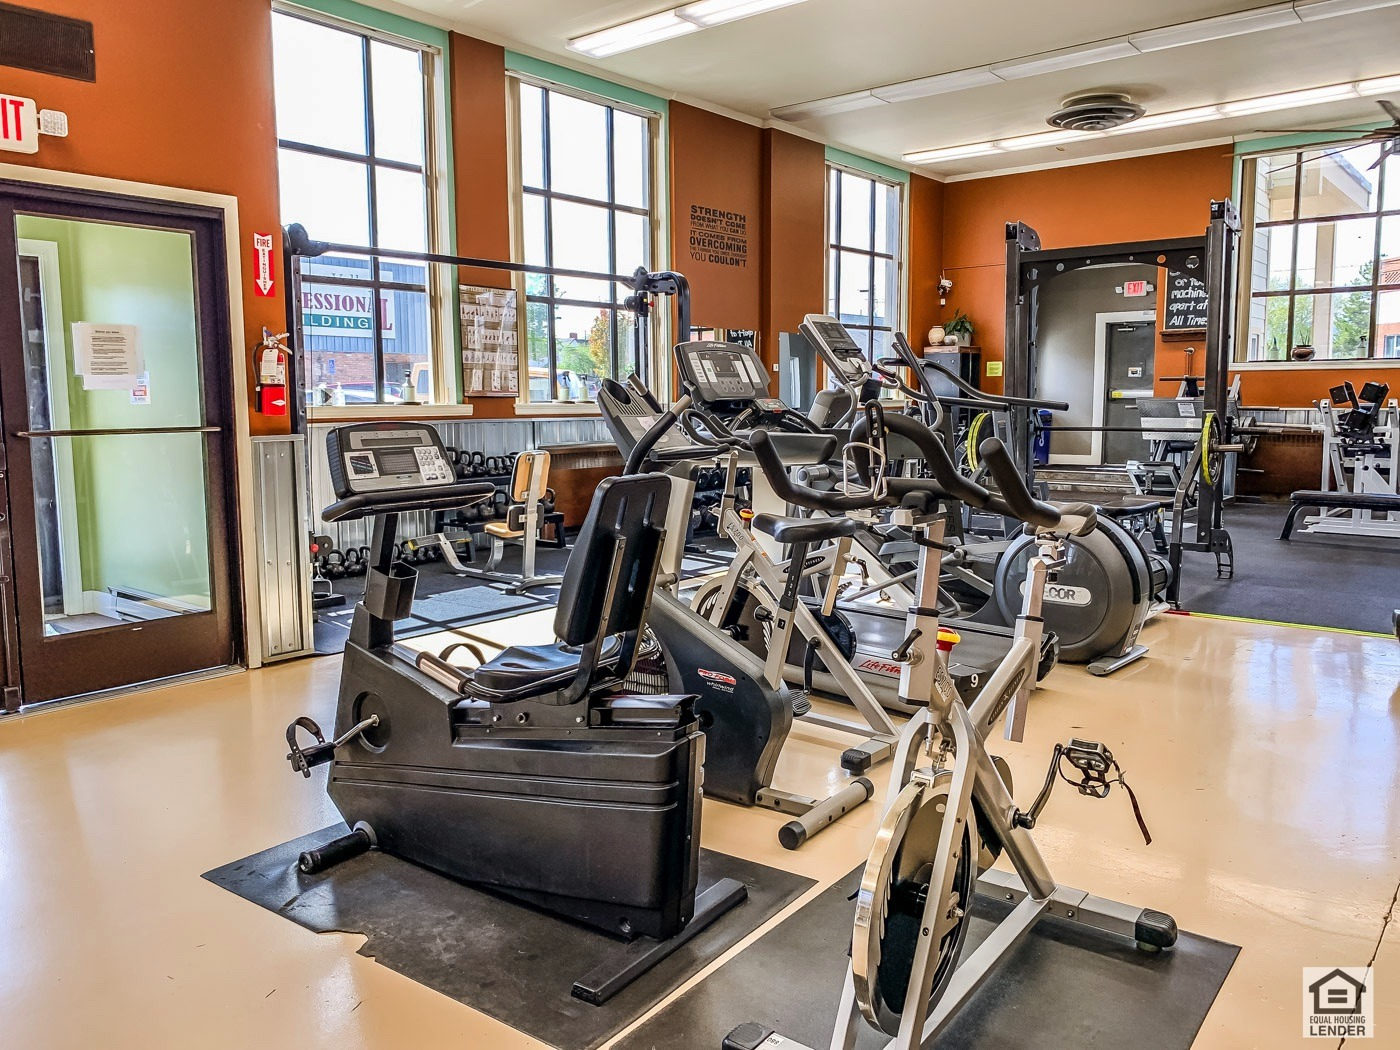 Currently a fitness center business use. Interior is immaculate and qualty and clean.